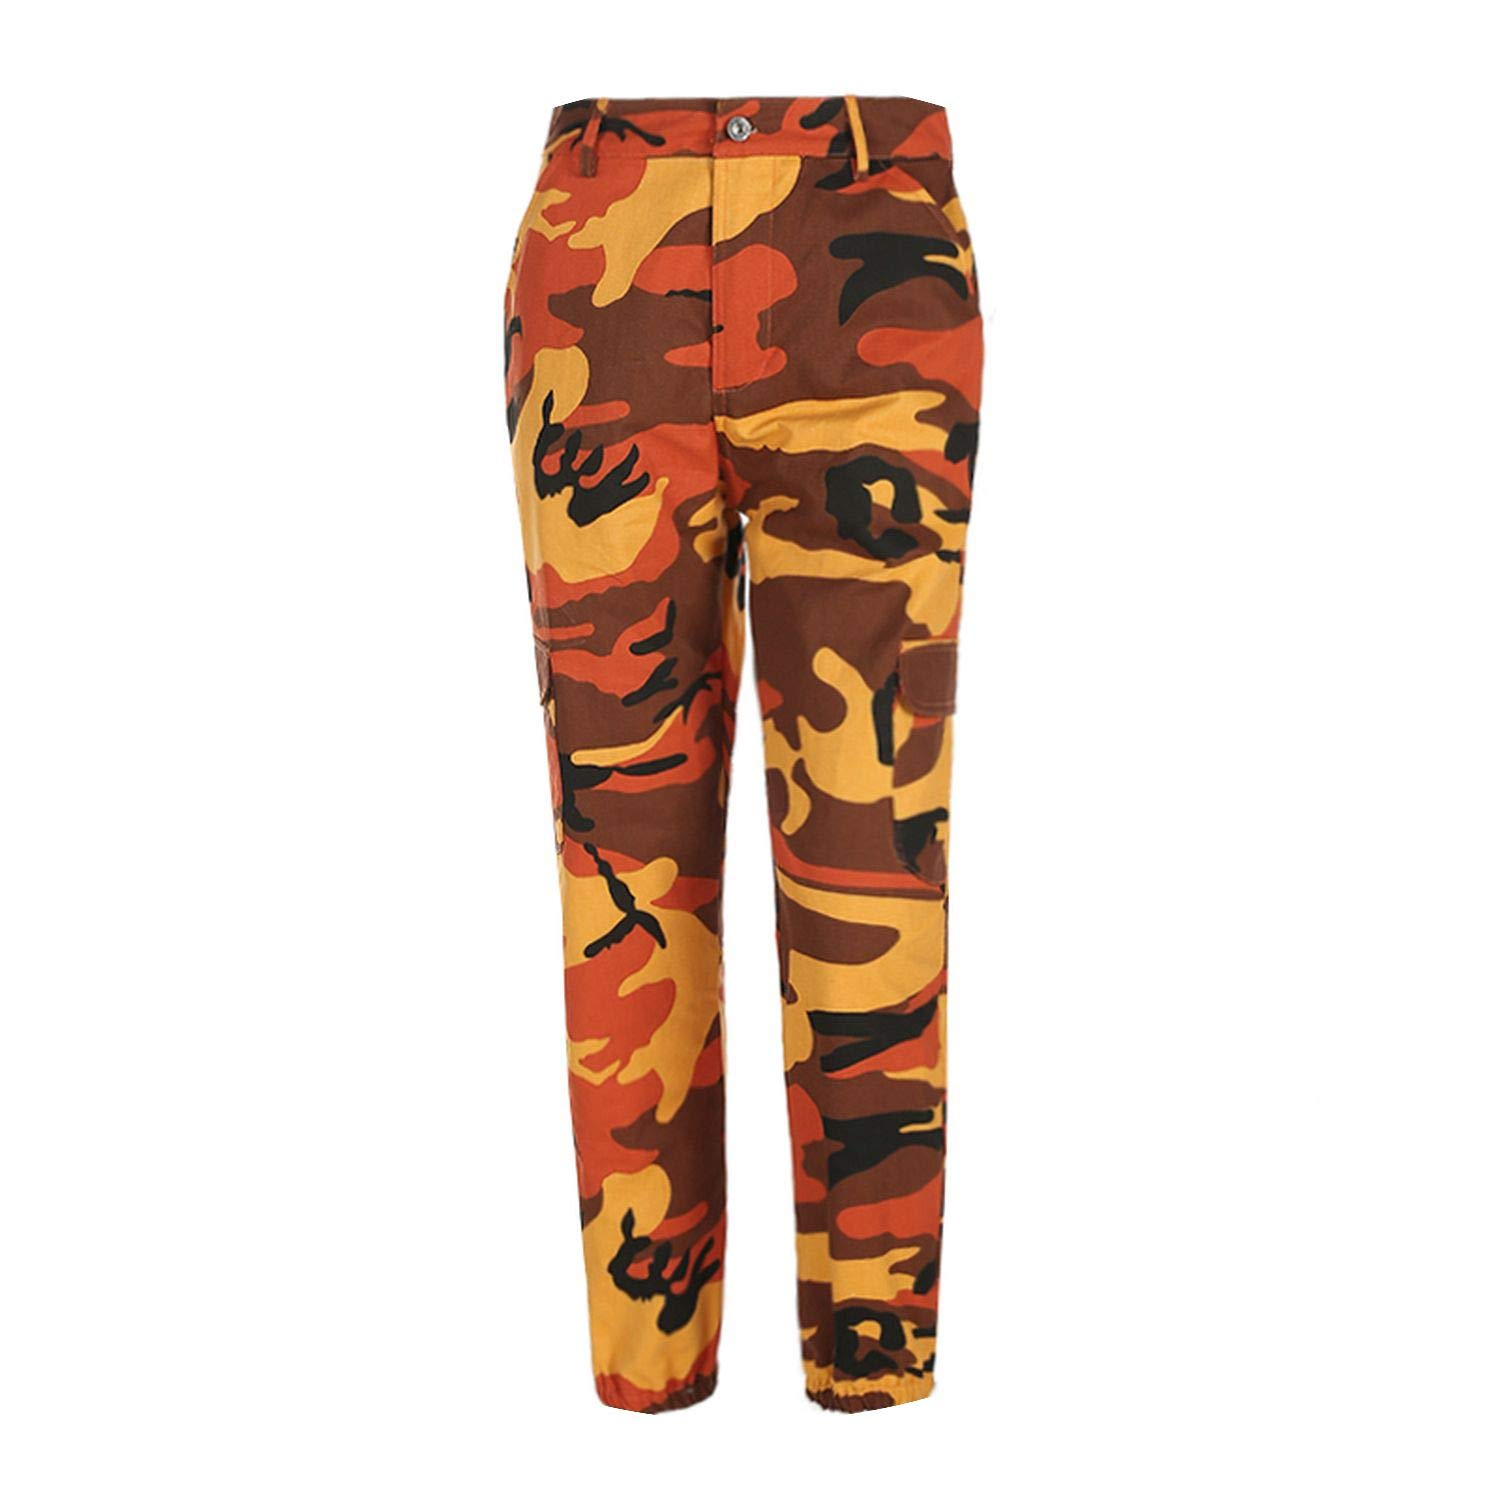 Women Camouflage Pants Casual Pink Camo Sweatpant Gray Orange Camo Pants  High Waist Trousers at Amazon Women s Clothing store  7c653a609c6